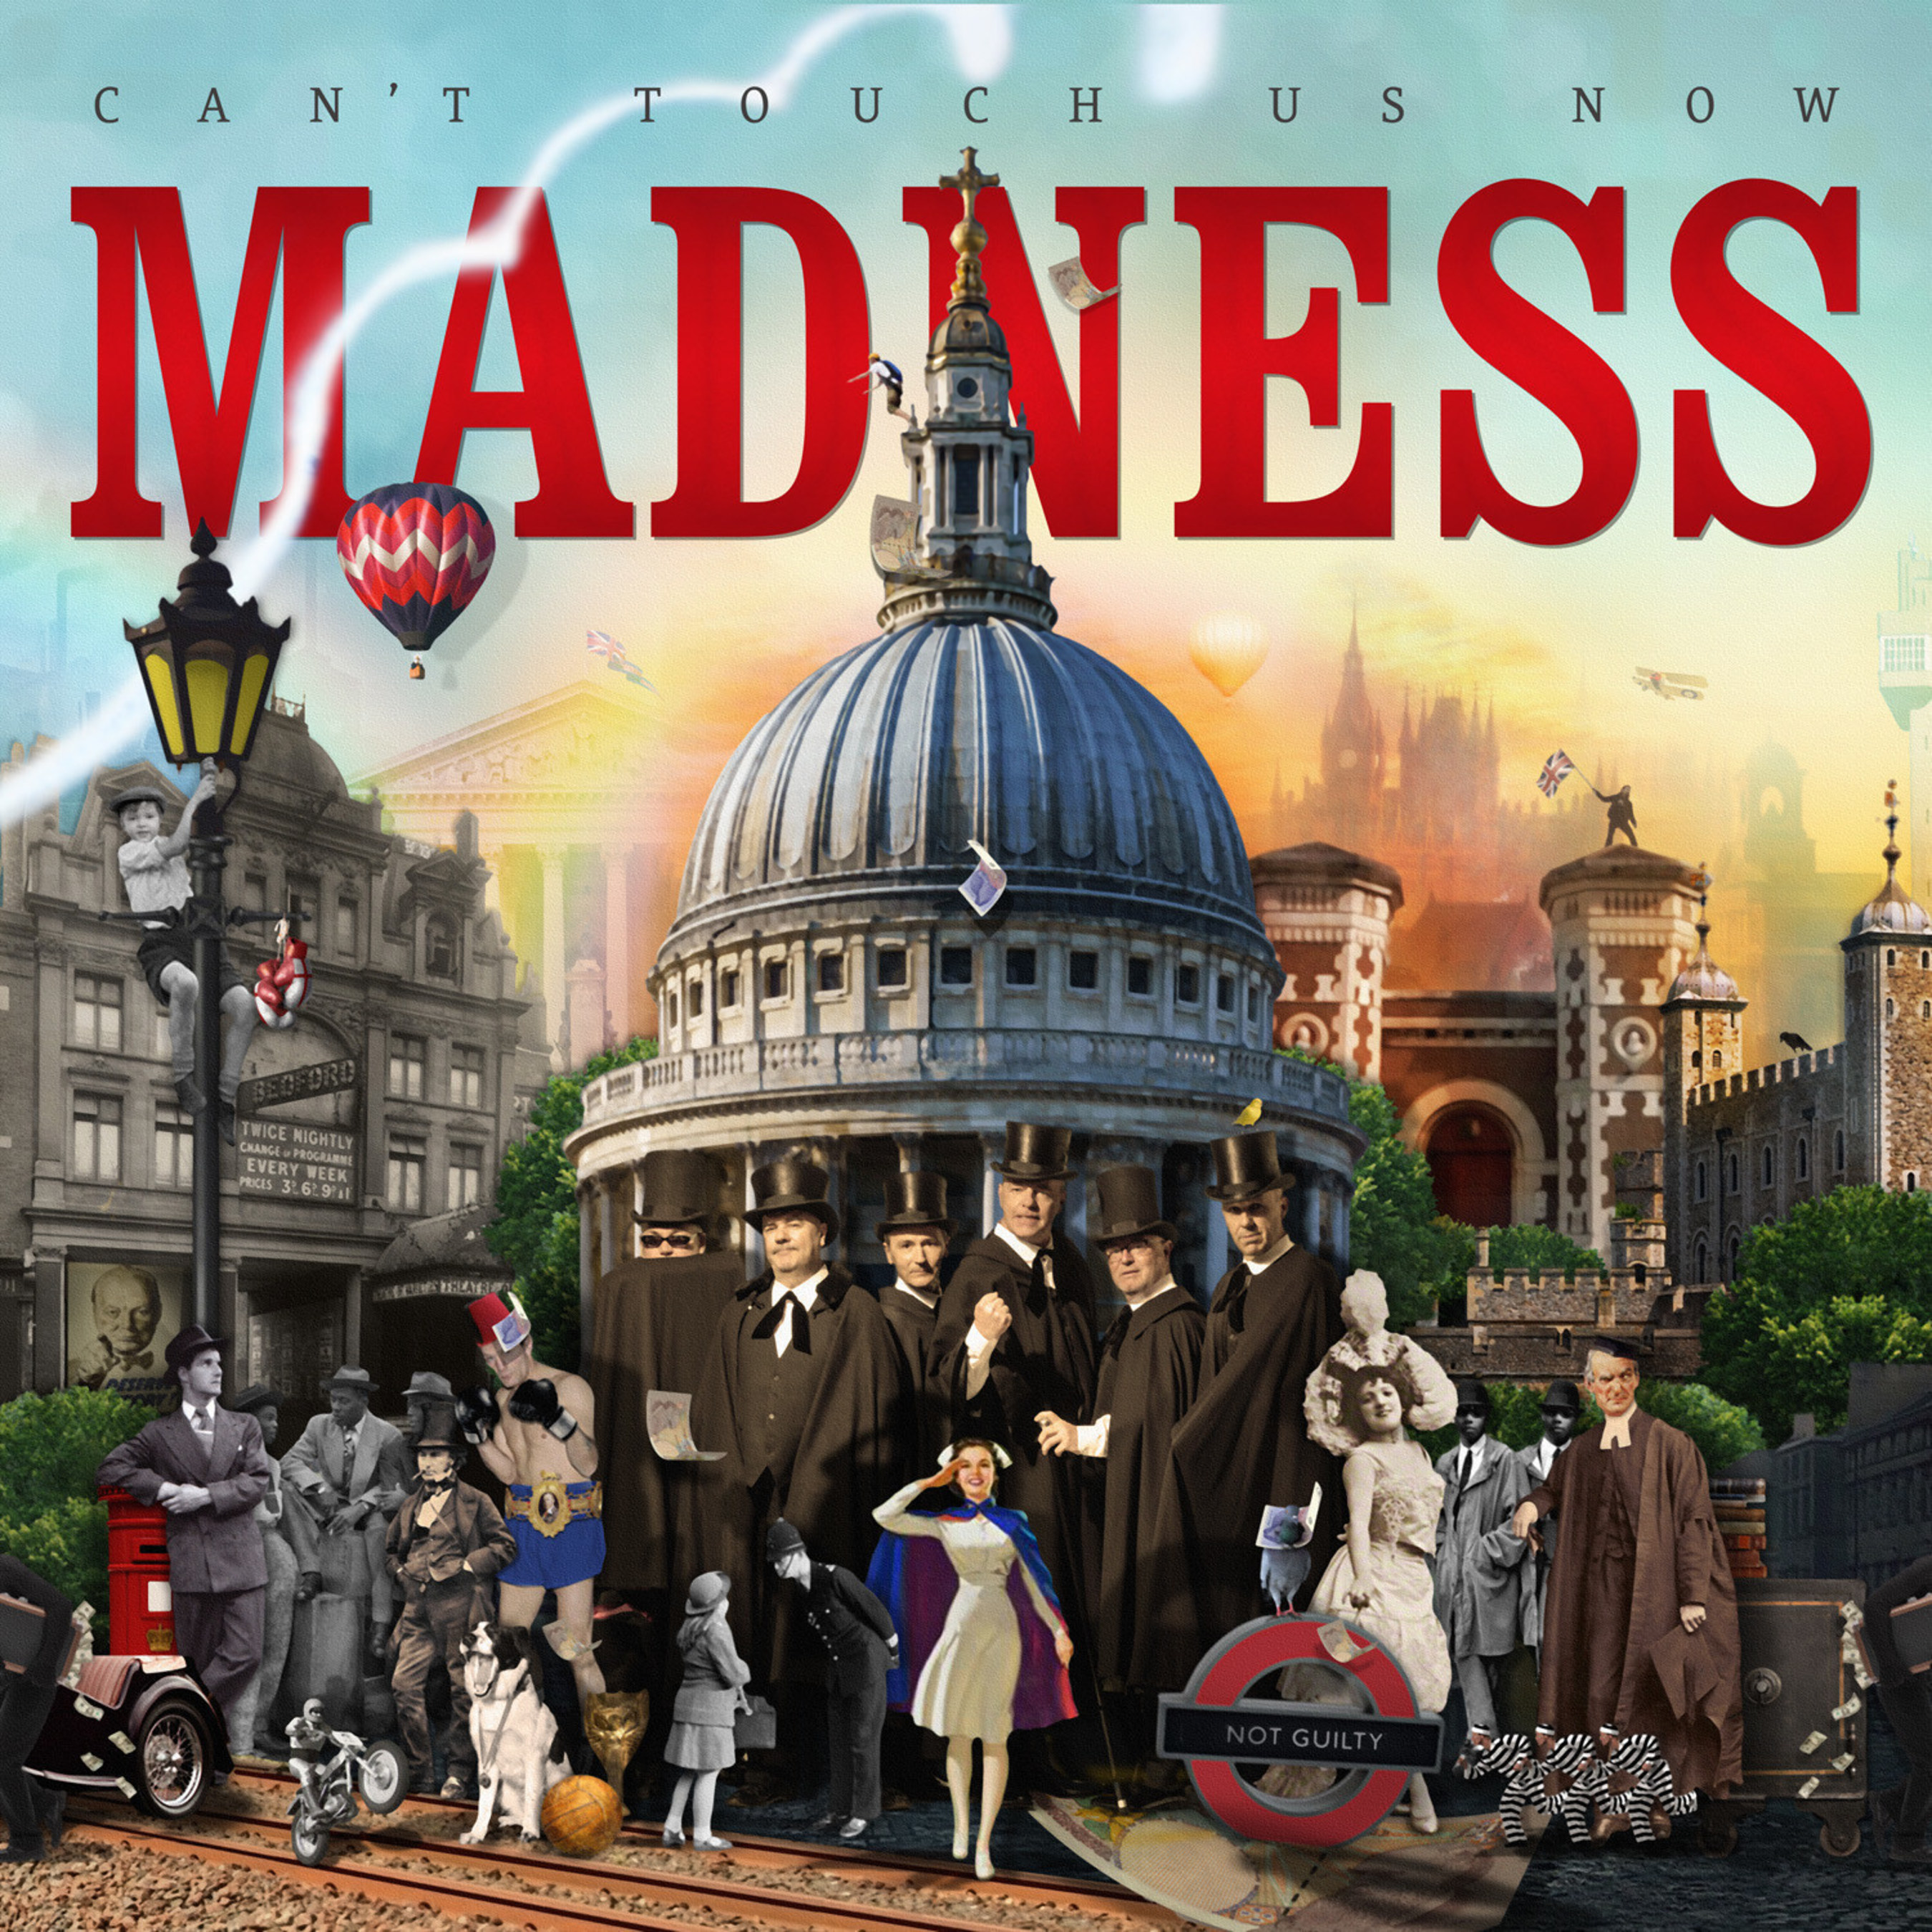 Madness Announce New Album 'Can't Touch Us Now' To Be Released October 28th On UMe